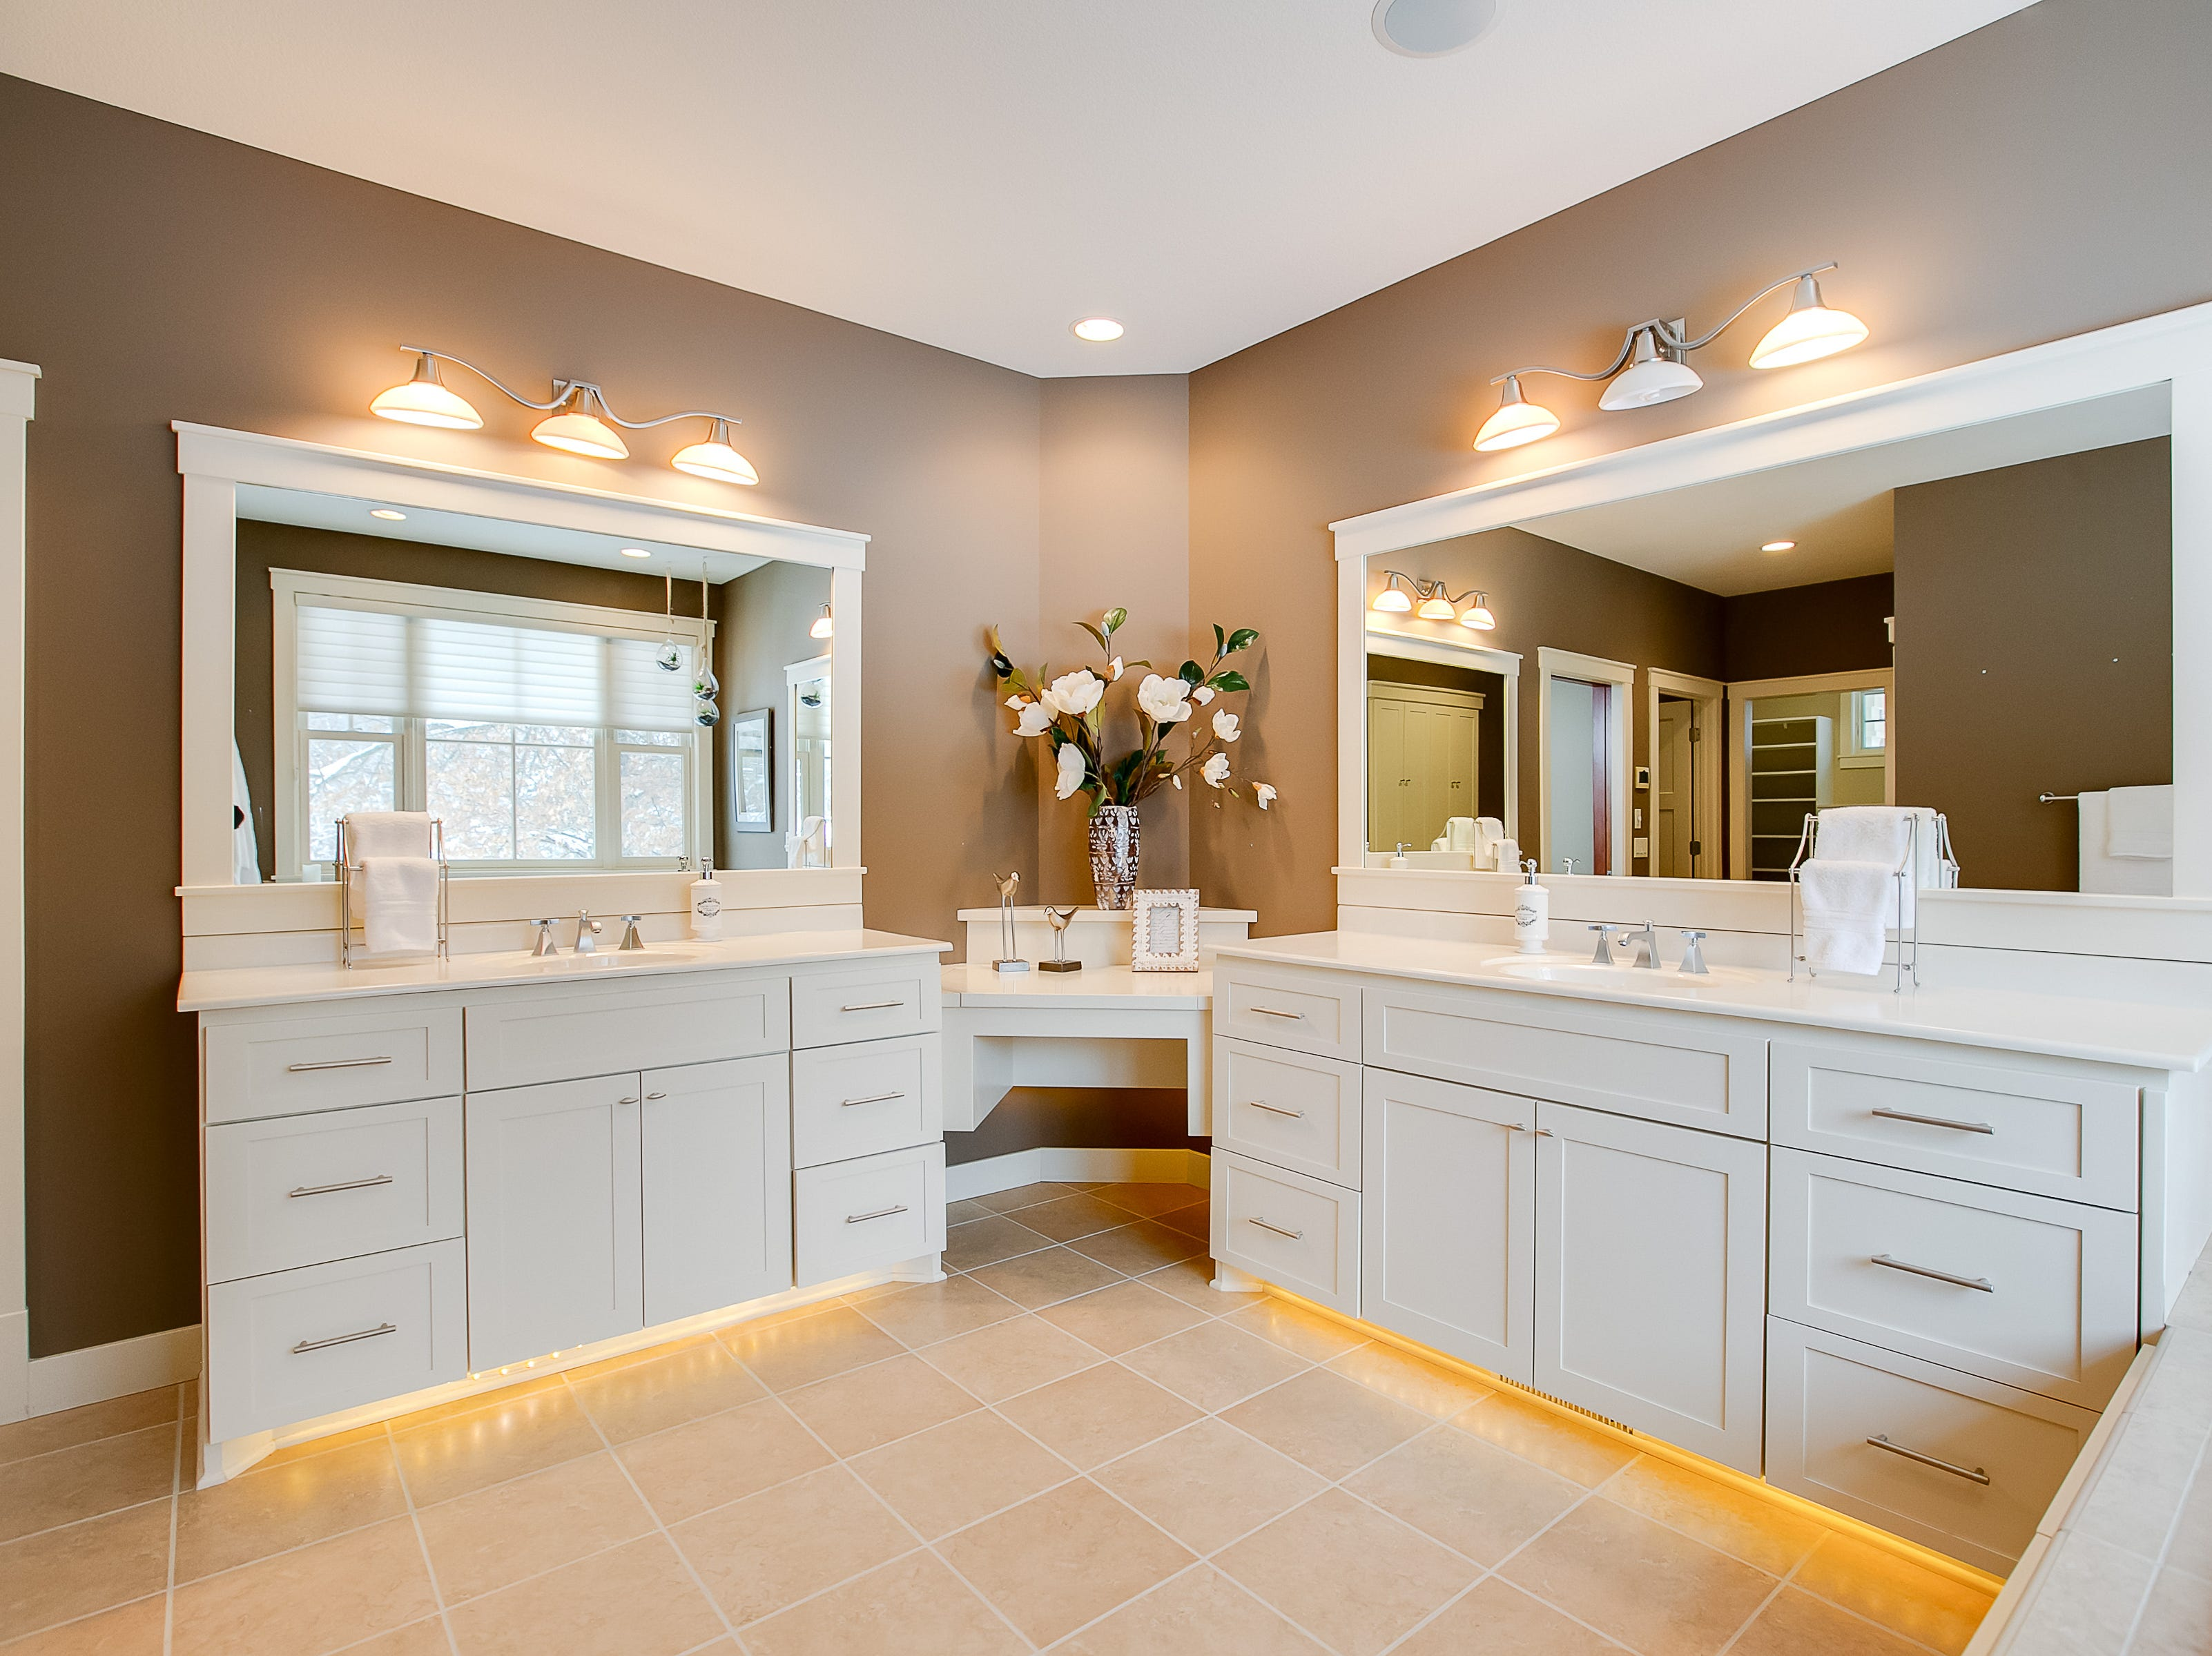 The master features its own en suite with a soaking tub, double vanities and a walk-in shower.